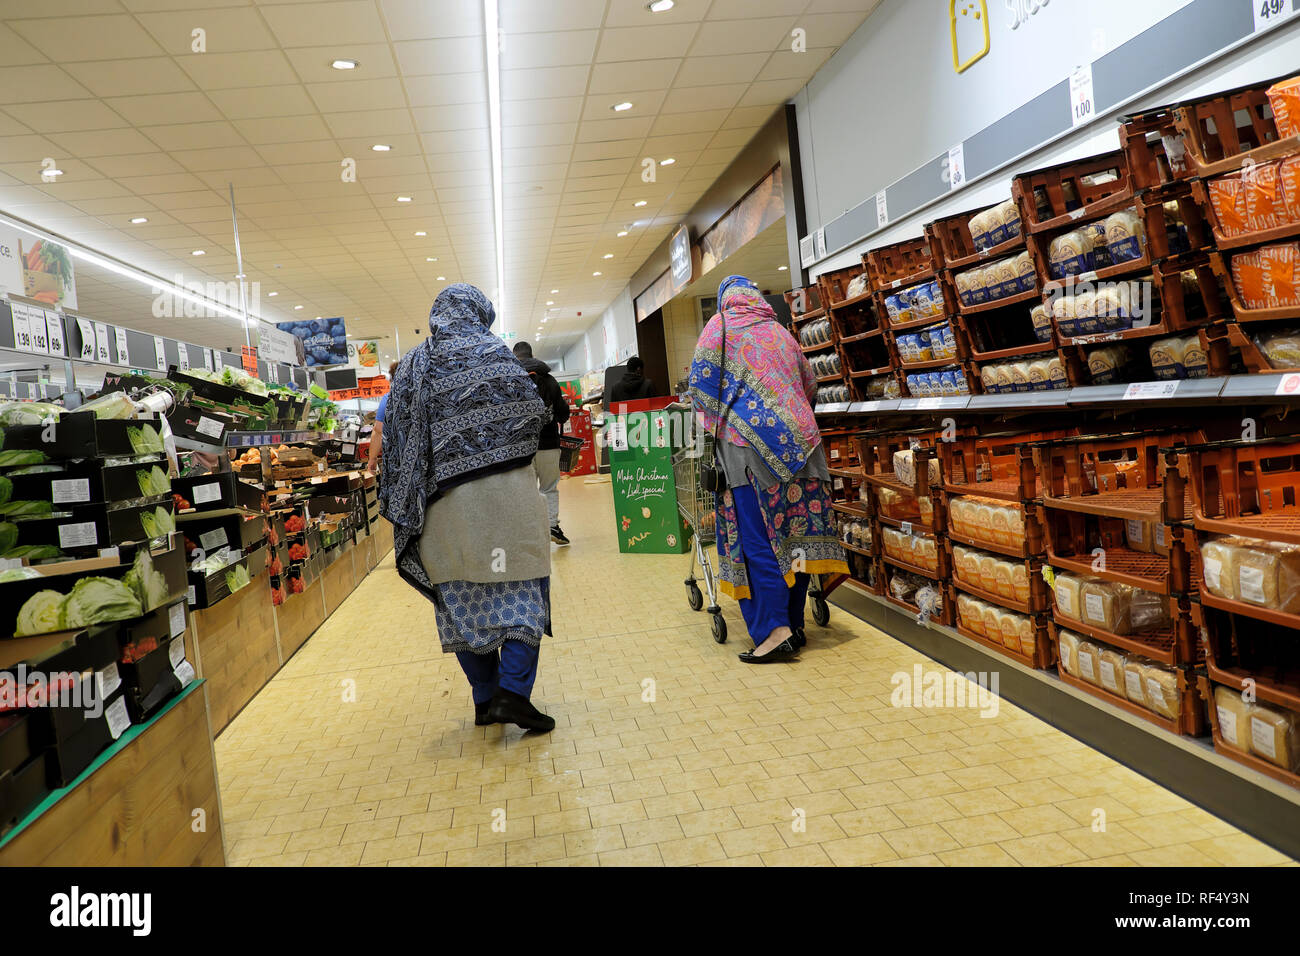 Lidl supermarket shoppers two elderly old women wearing headscarf shopping together in UK  KATHY DEWITT - Stock Image